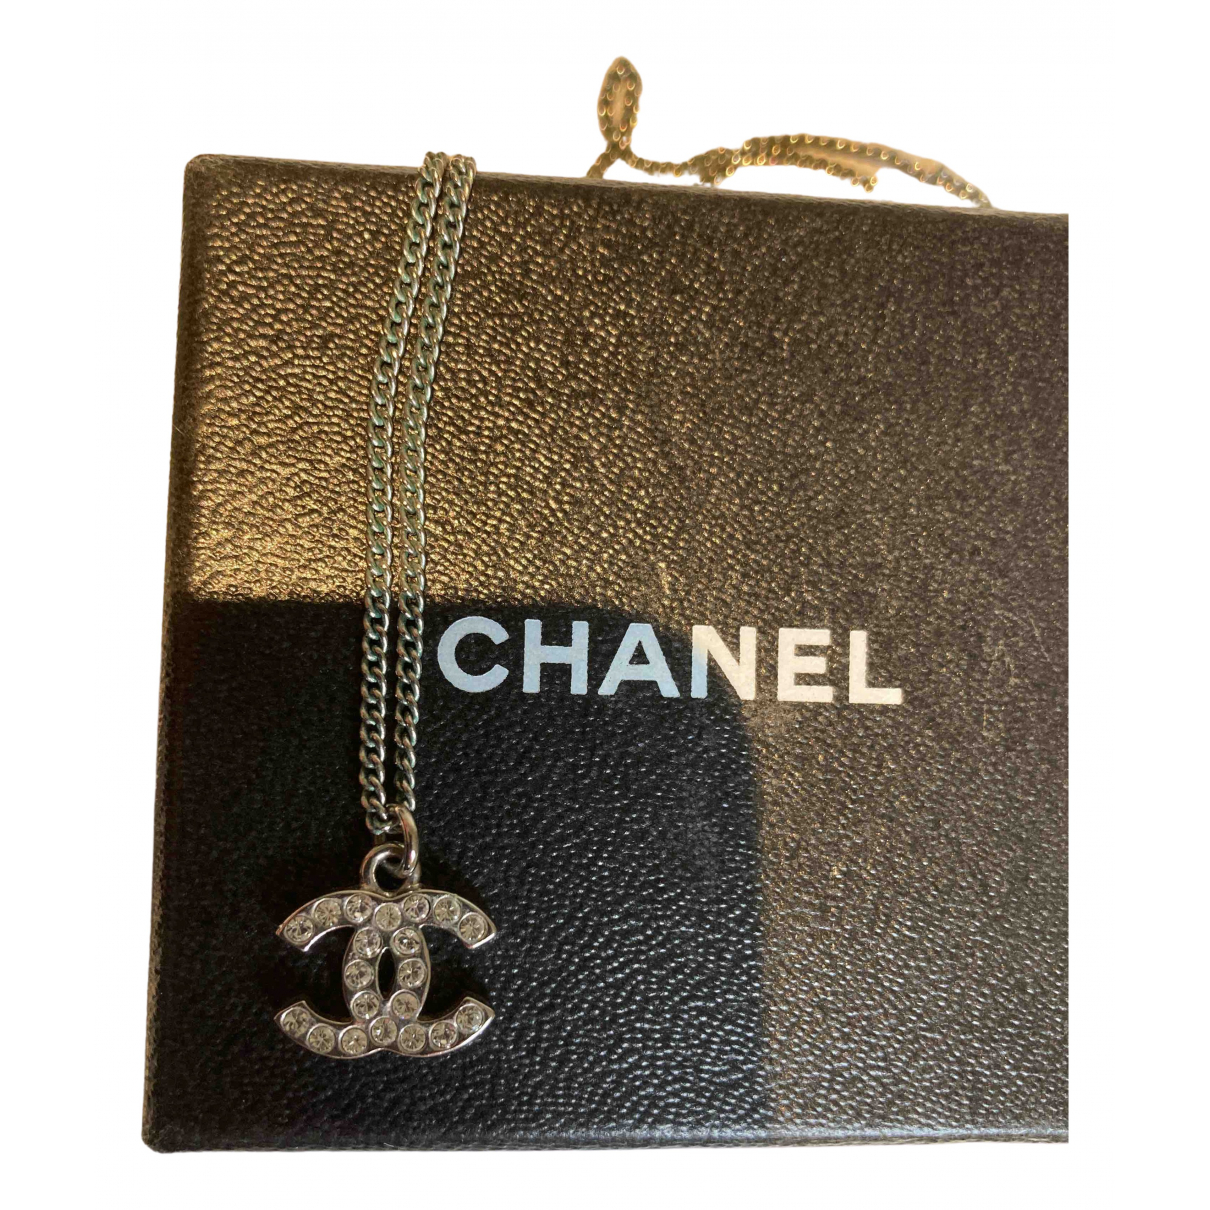 Chanel CHANEL Kette in  Silber Metall